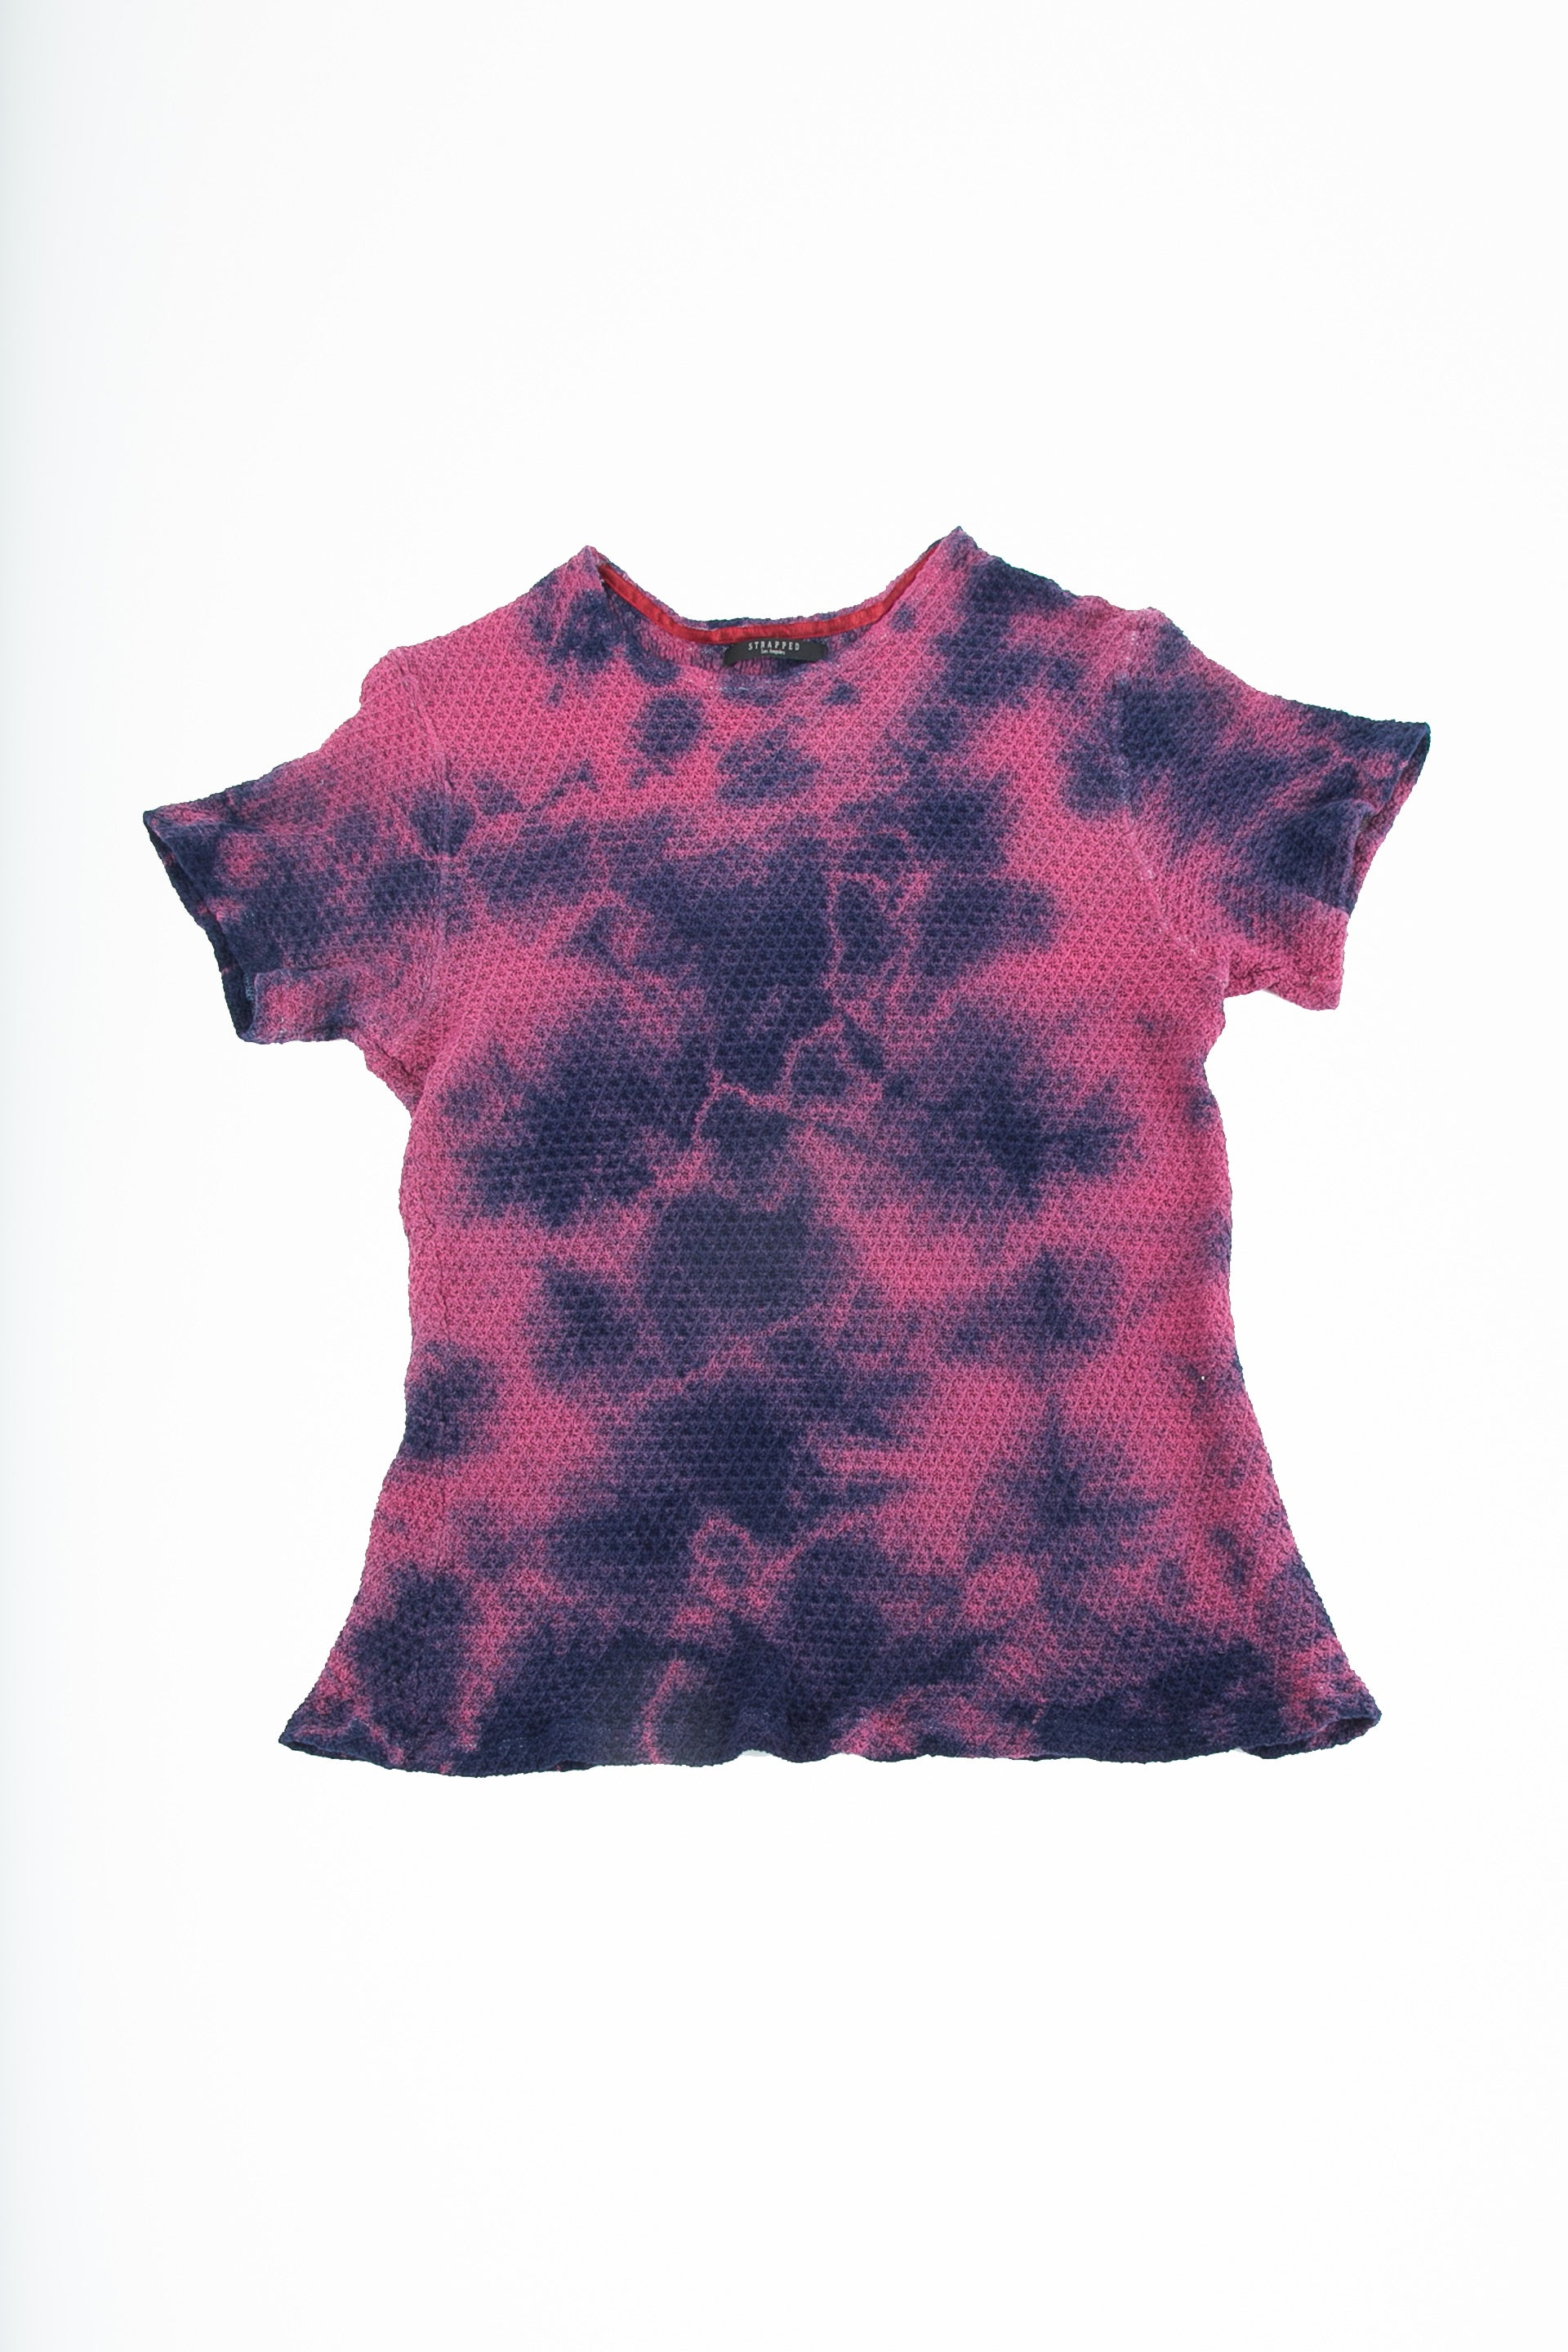 Pointelle Tee in Washed Violet